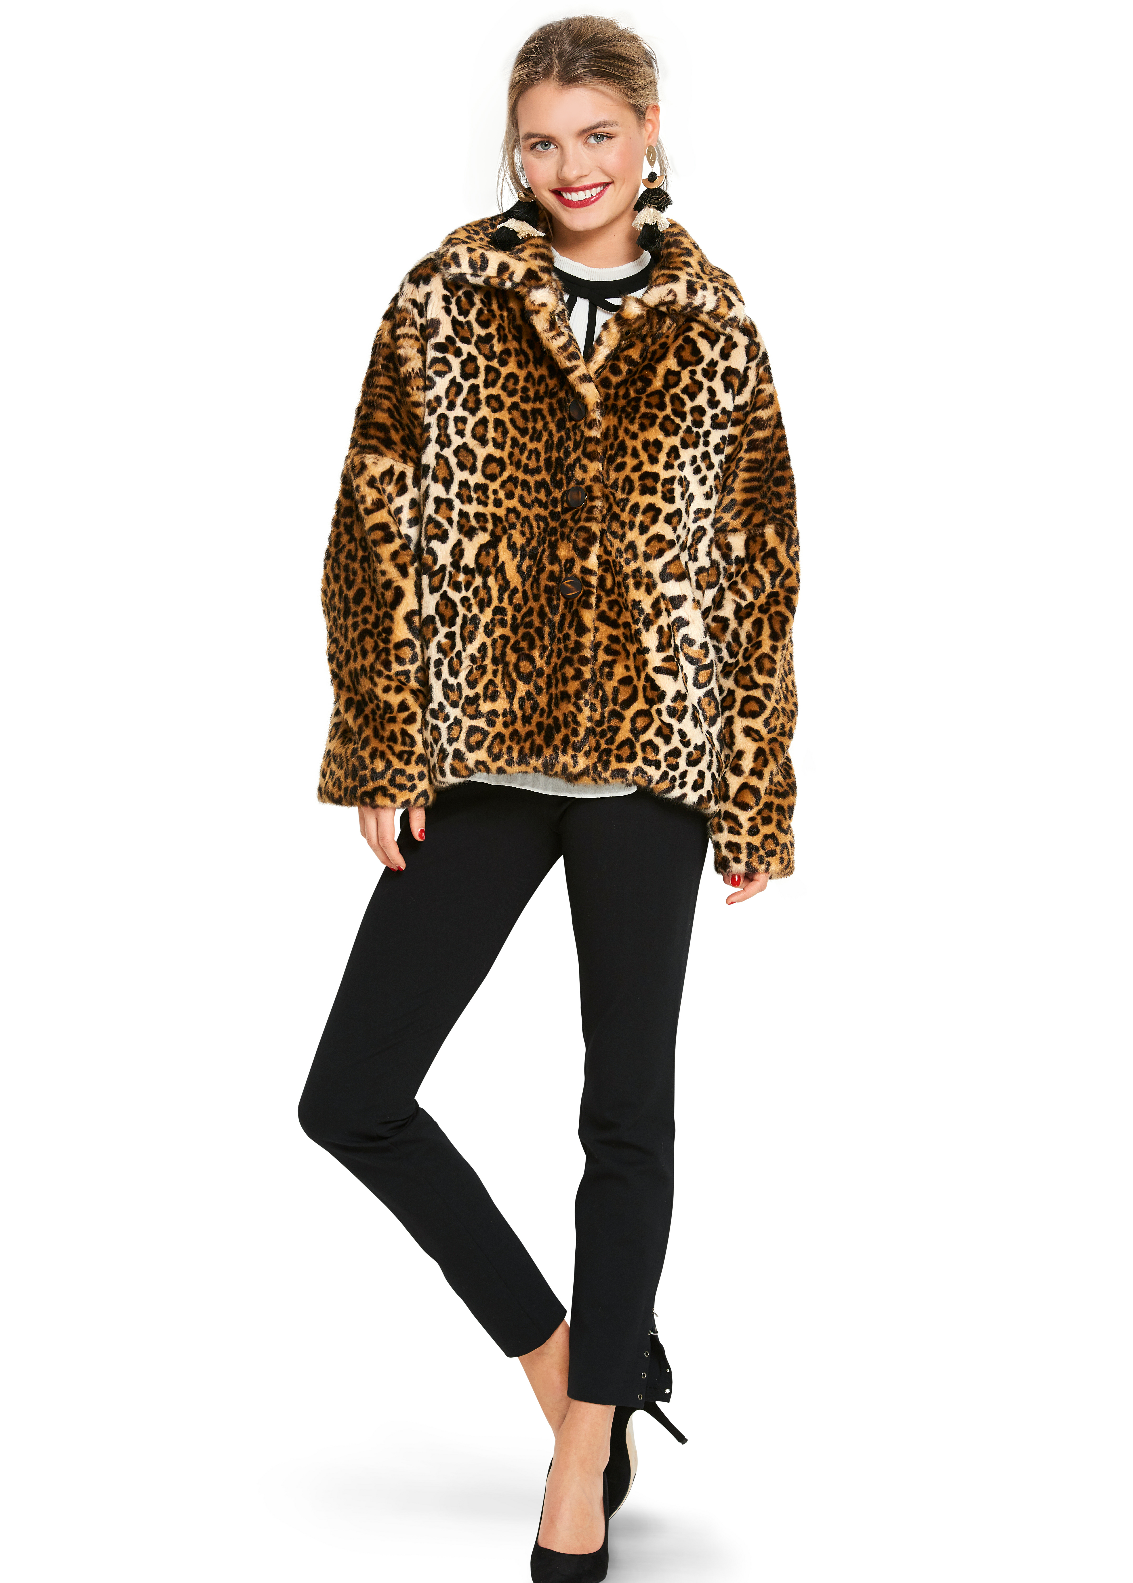 BD6359 Women's Fake Fur Coat pattern